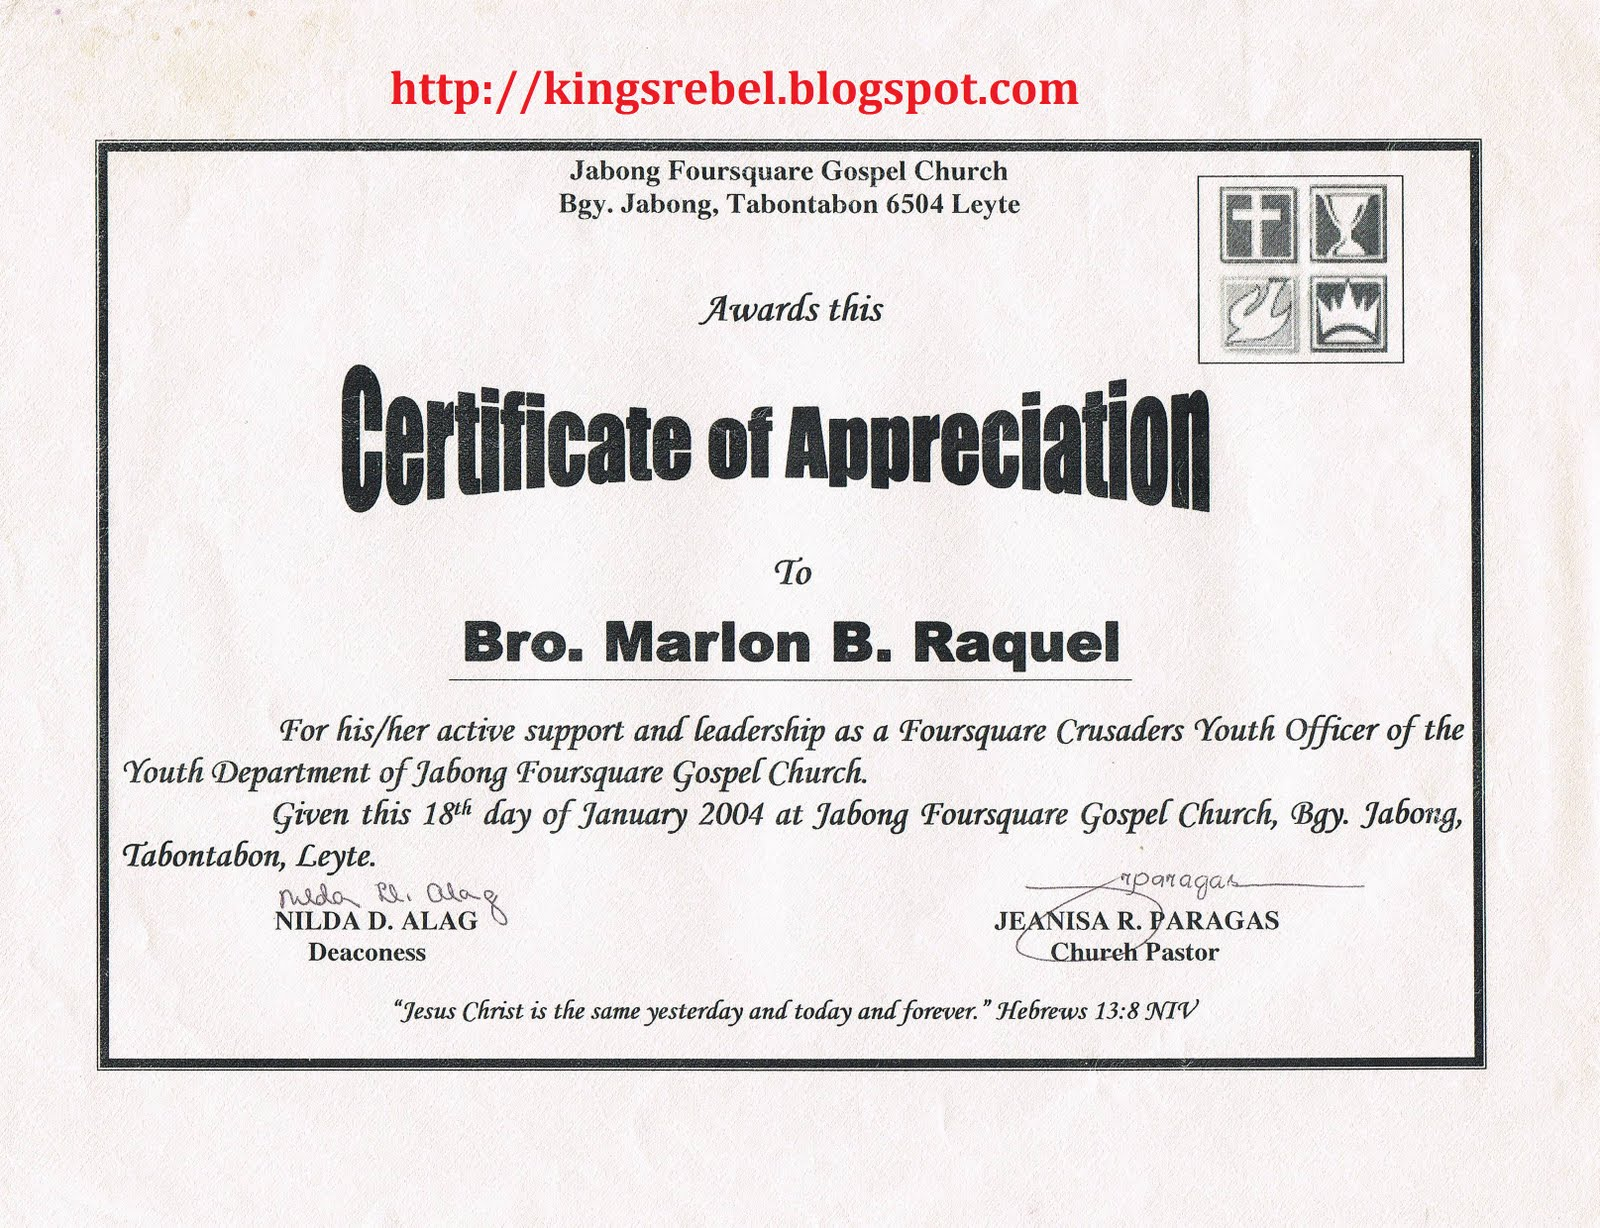 Examples of Certificate of Appreciation http://kingsrebel.blogspot.com/2011/01/example-of-certificate-of-appreciation_28.html